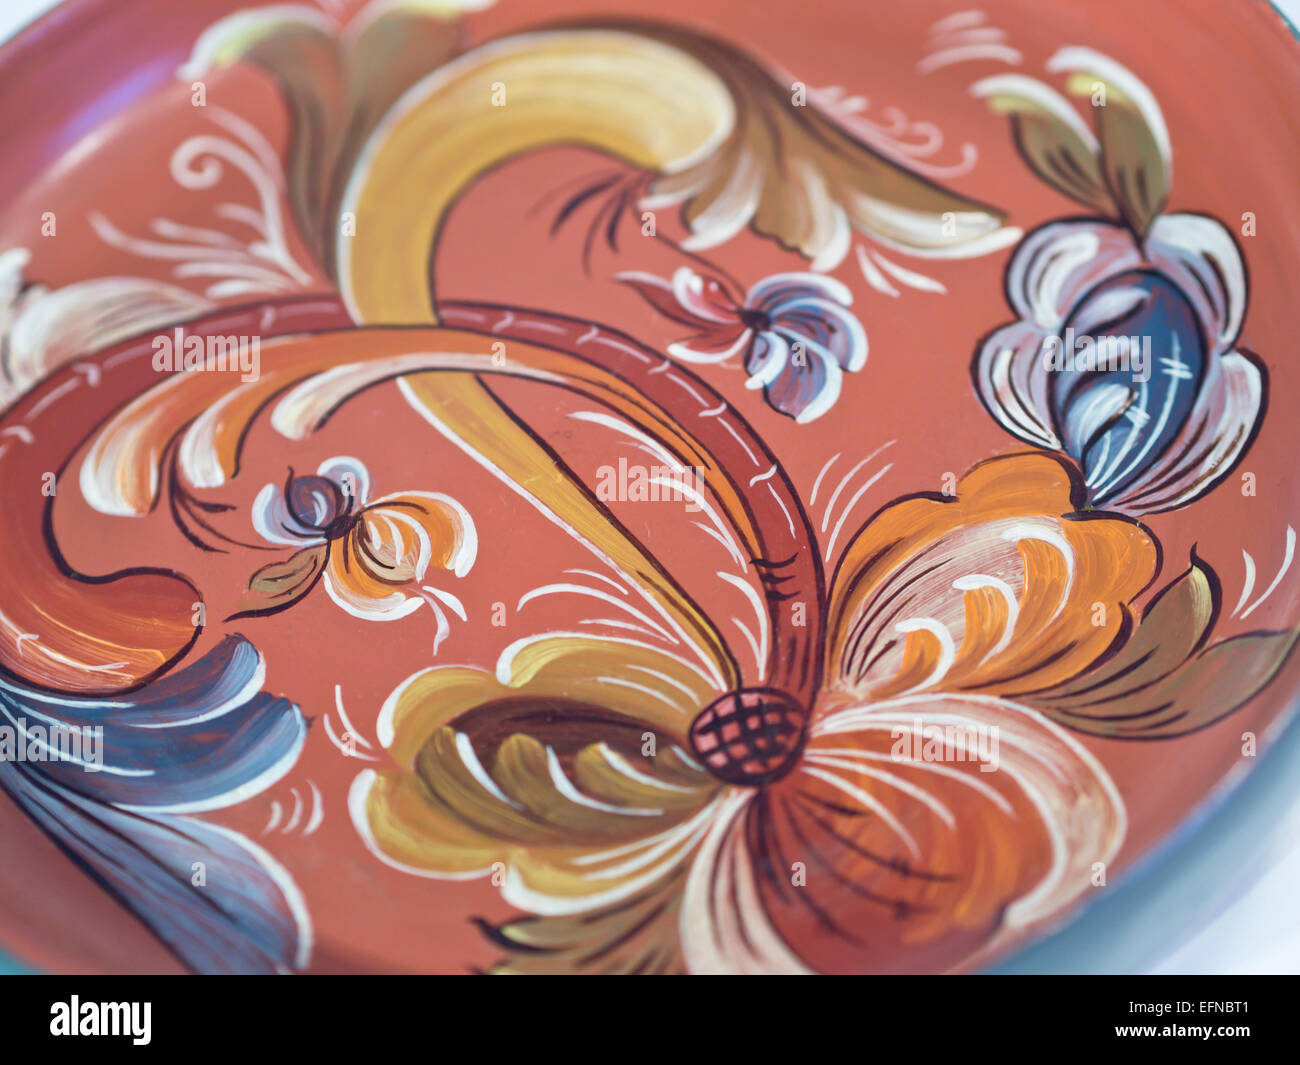 Rosemaling, traditional Norwegian decorative folk art painting, abstracted floral and plant motif on red and blue - Stock Image